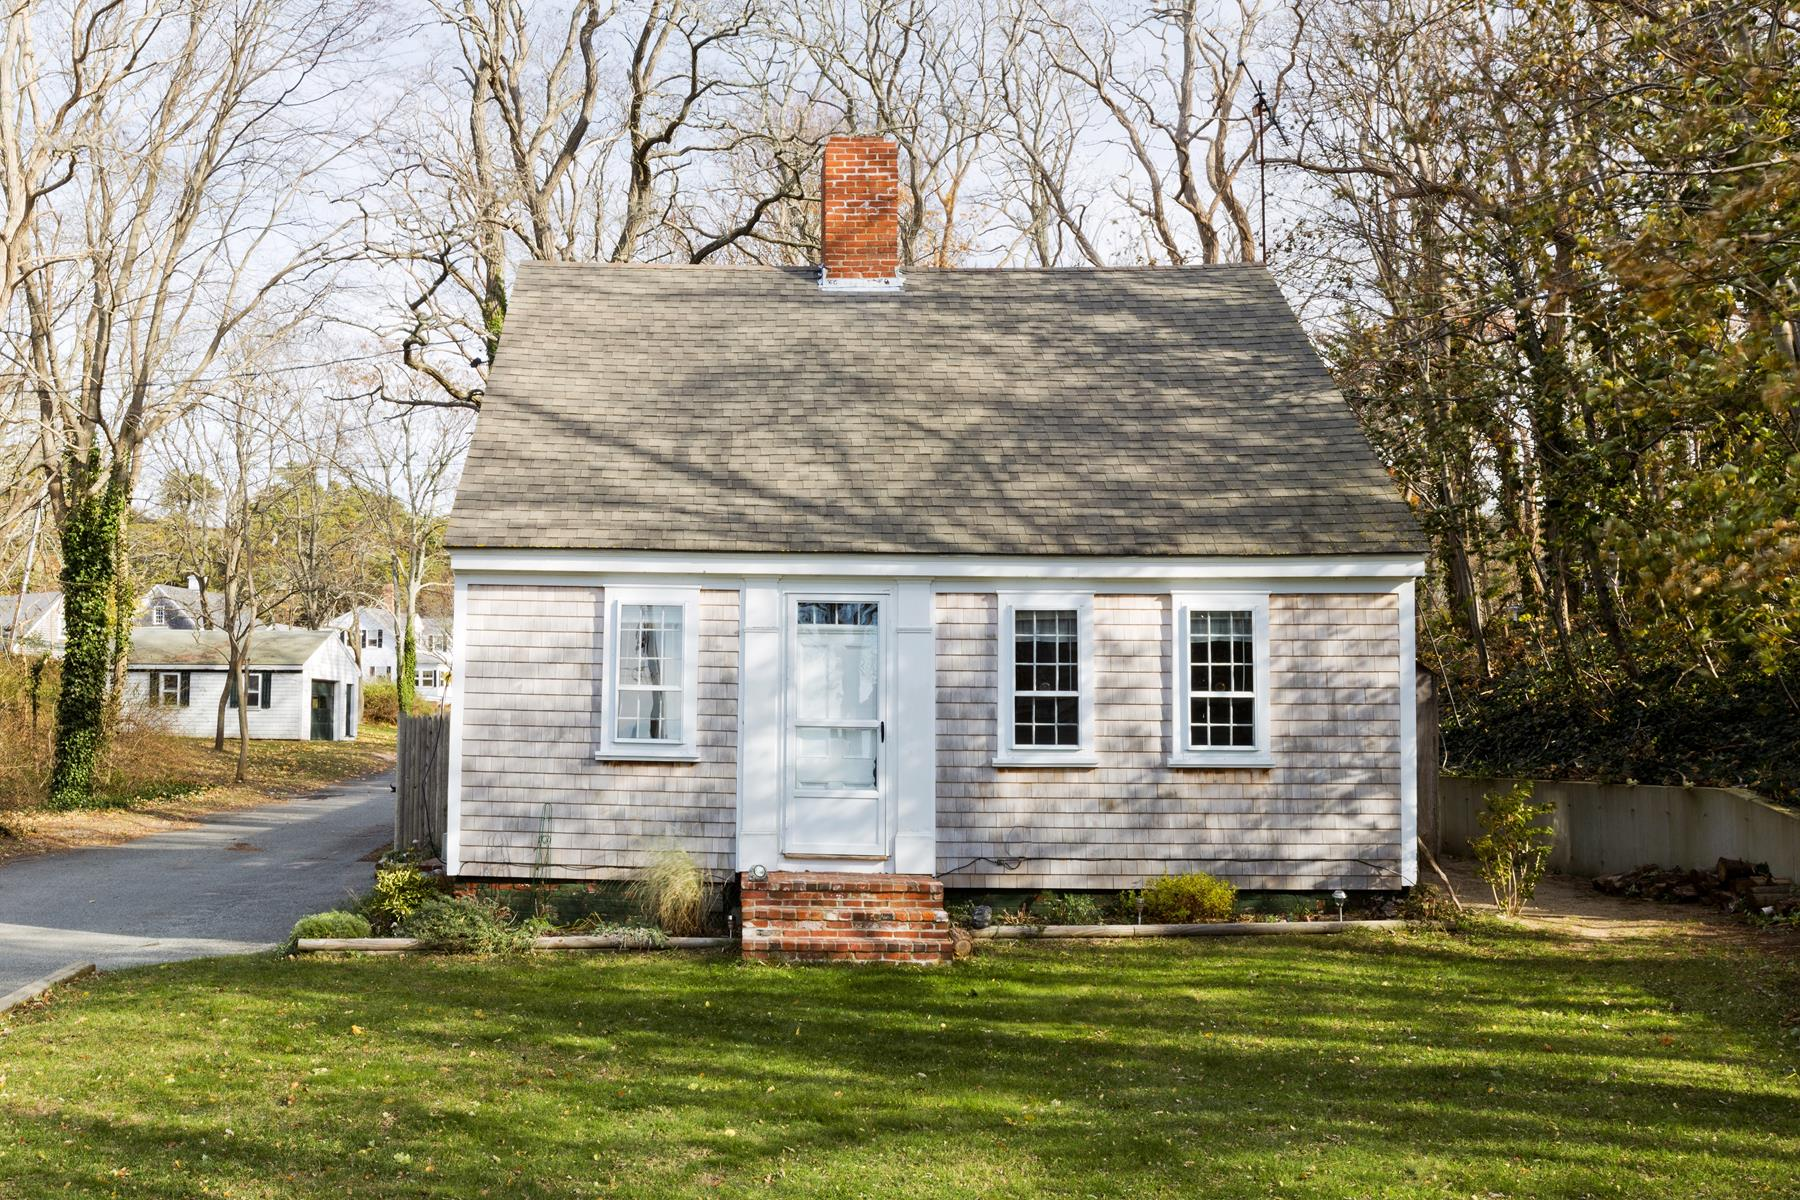 Single Family Home for Sale at Antique Cape 5 Meetinghouse Road Truro, Massachusetts 02666 United States